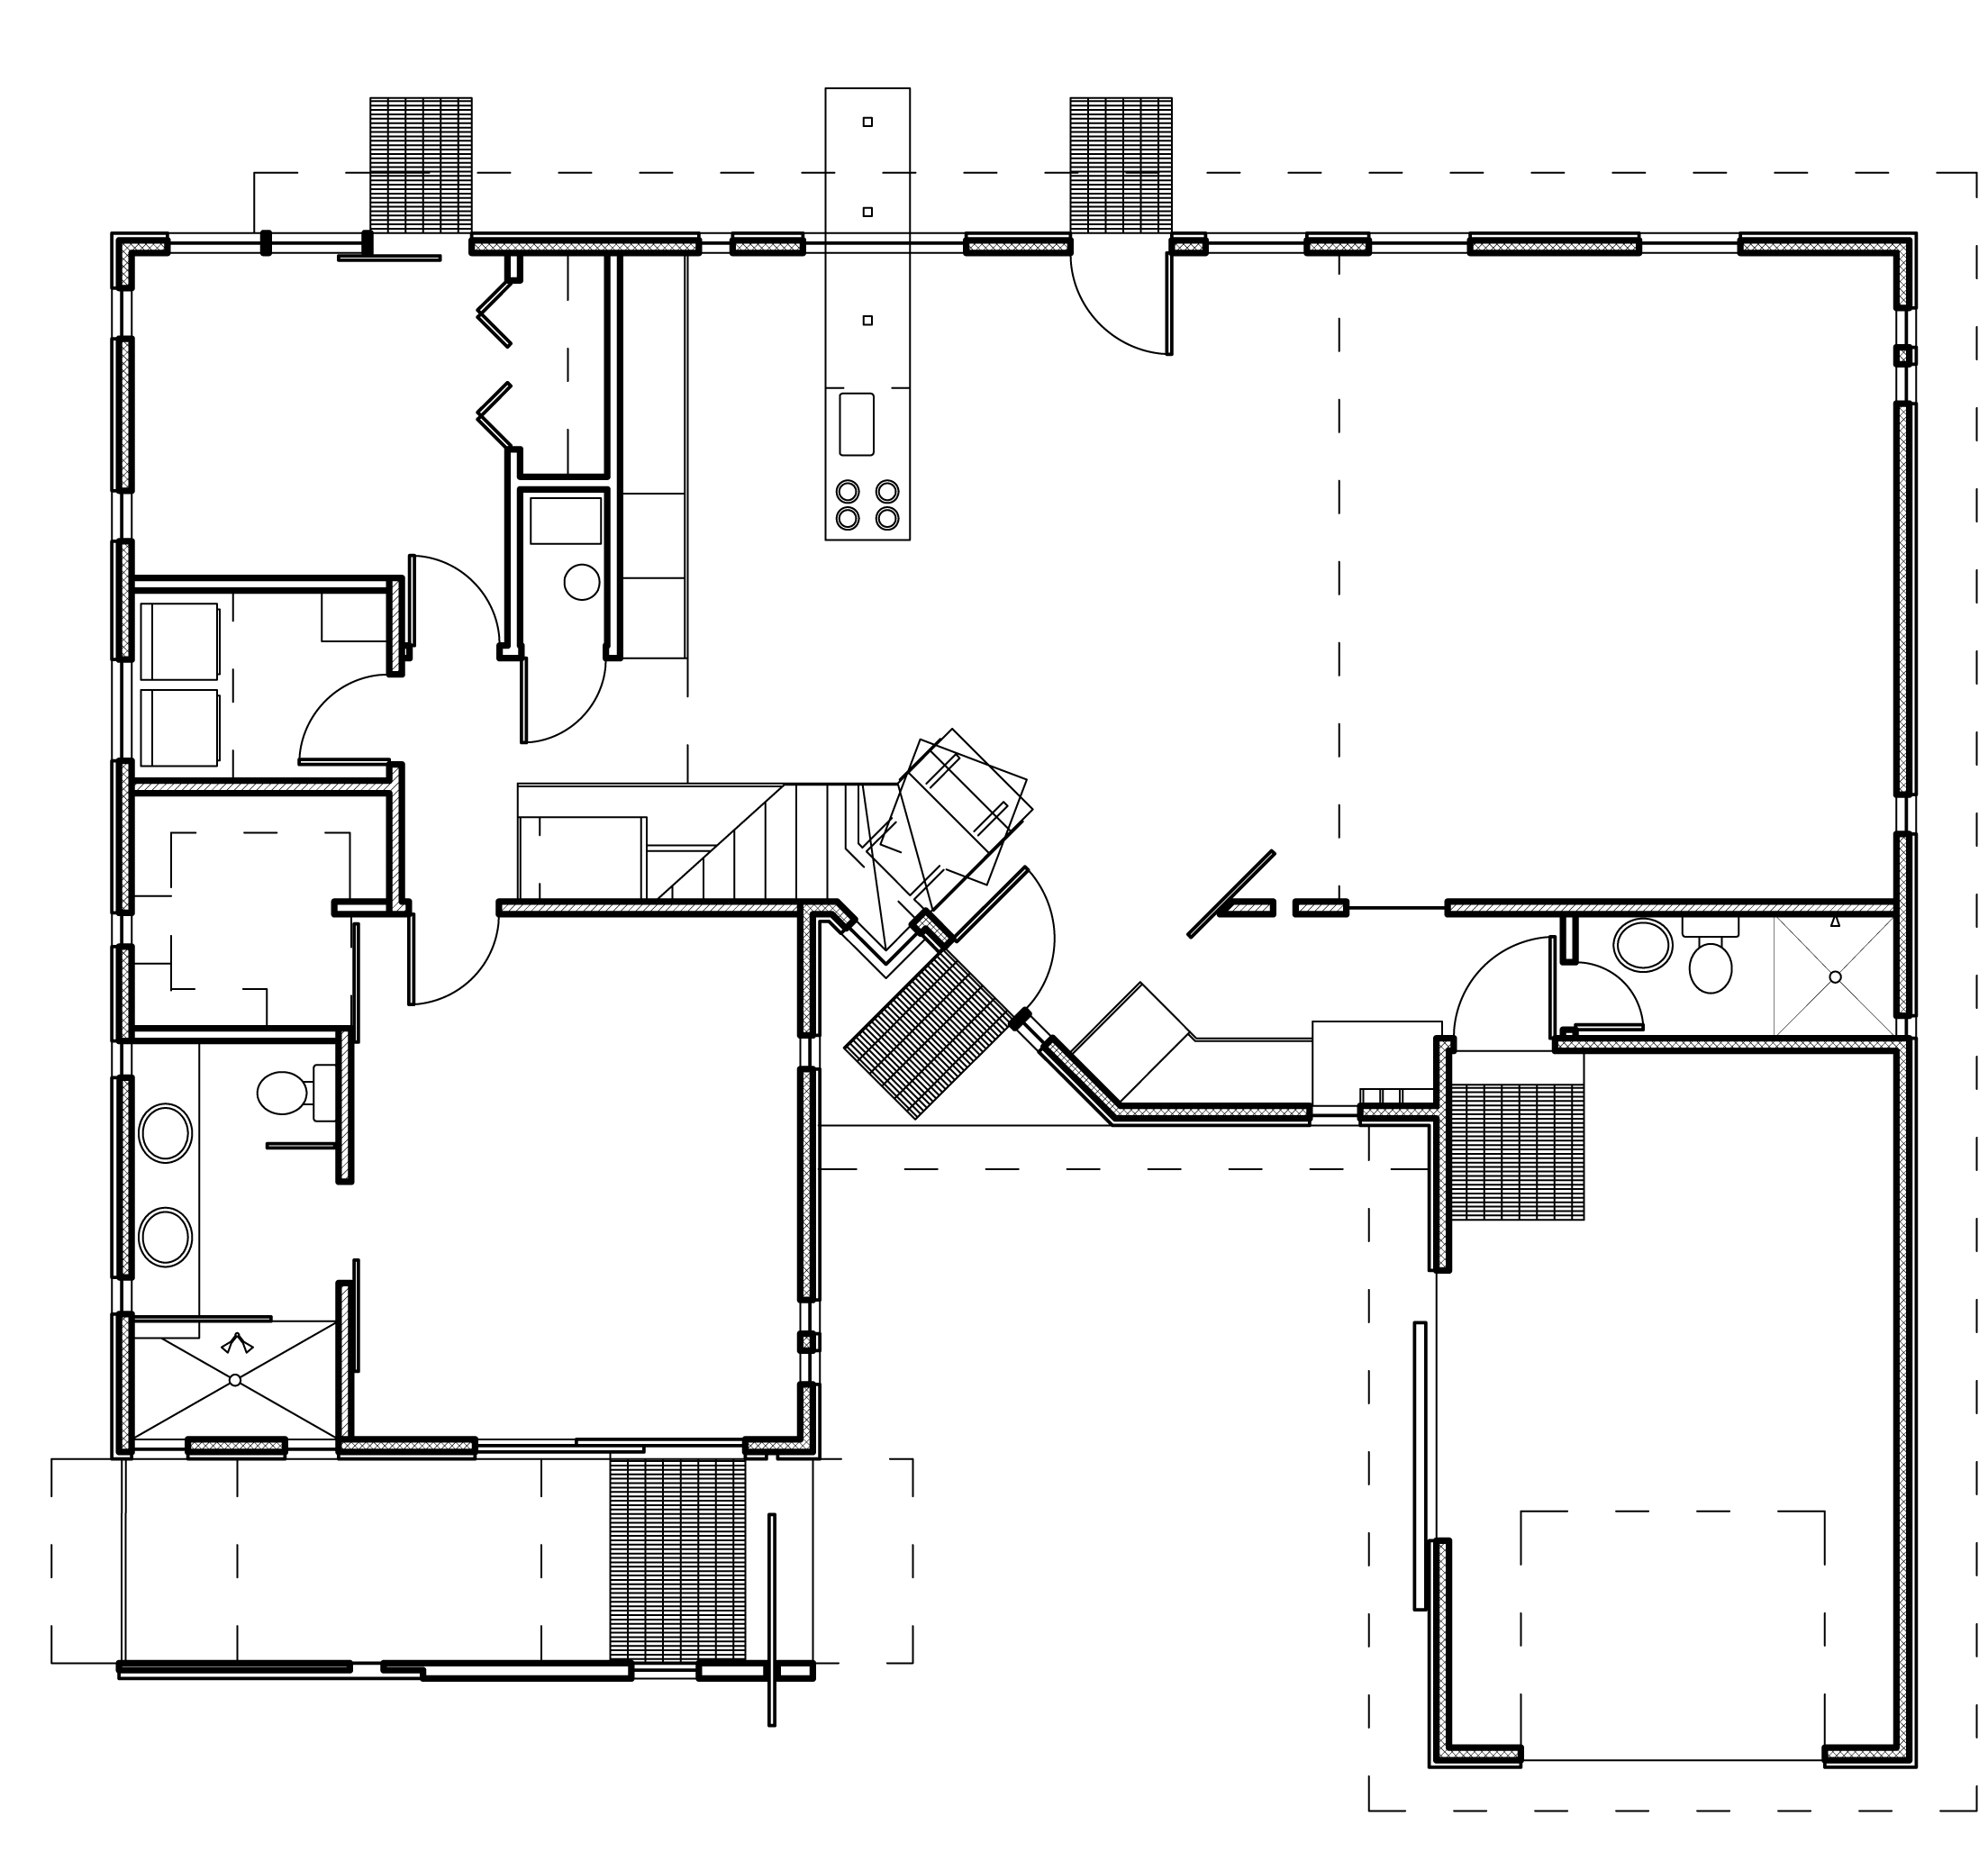 Modern house plans contemporary home designs floor plan 03 for Modern home floor plans free